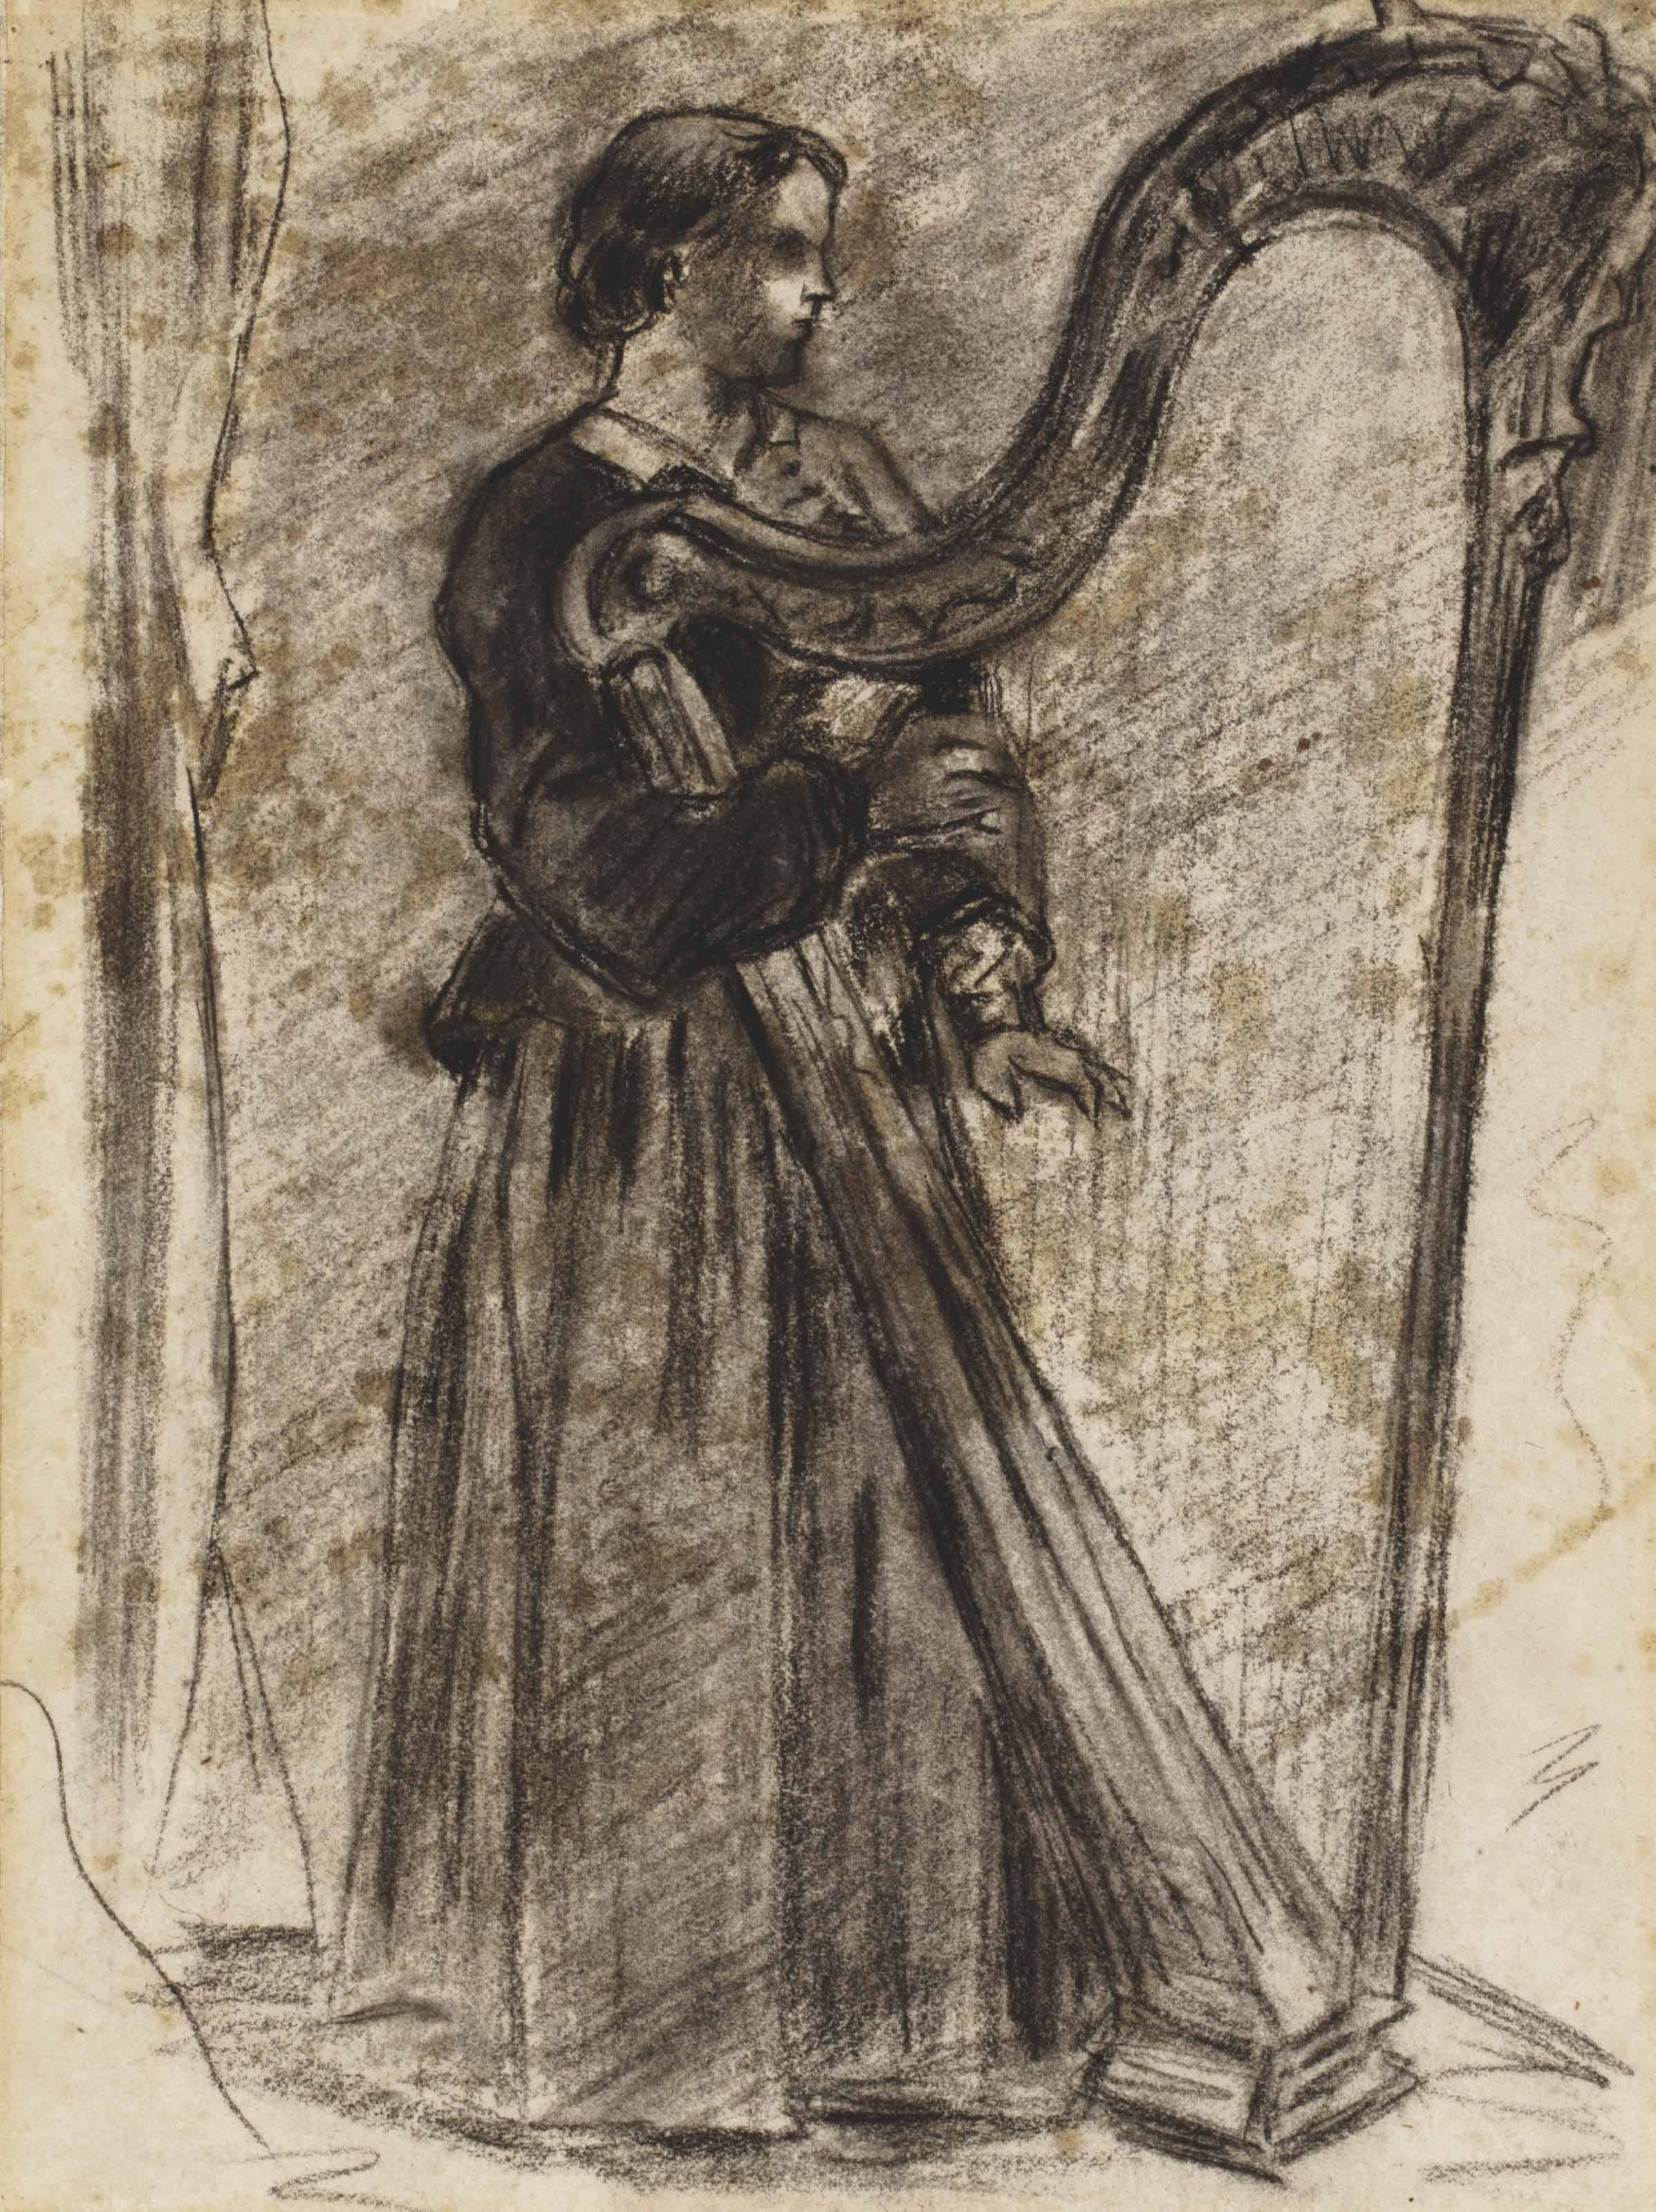 Attributed to Willem Maris (The Hague 1844-1910)